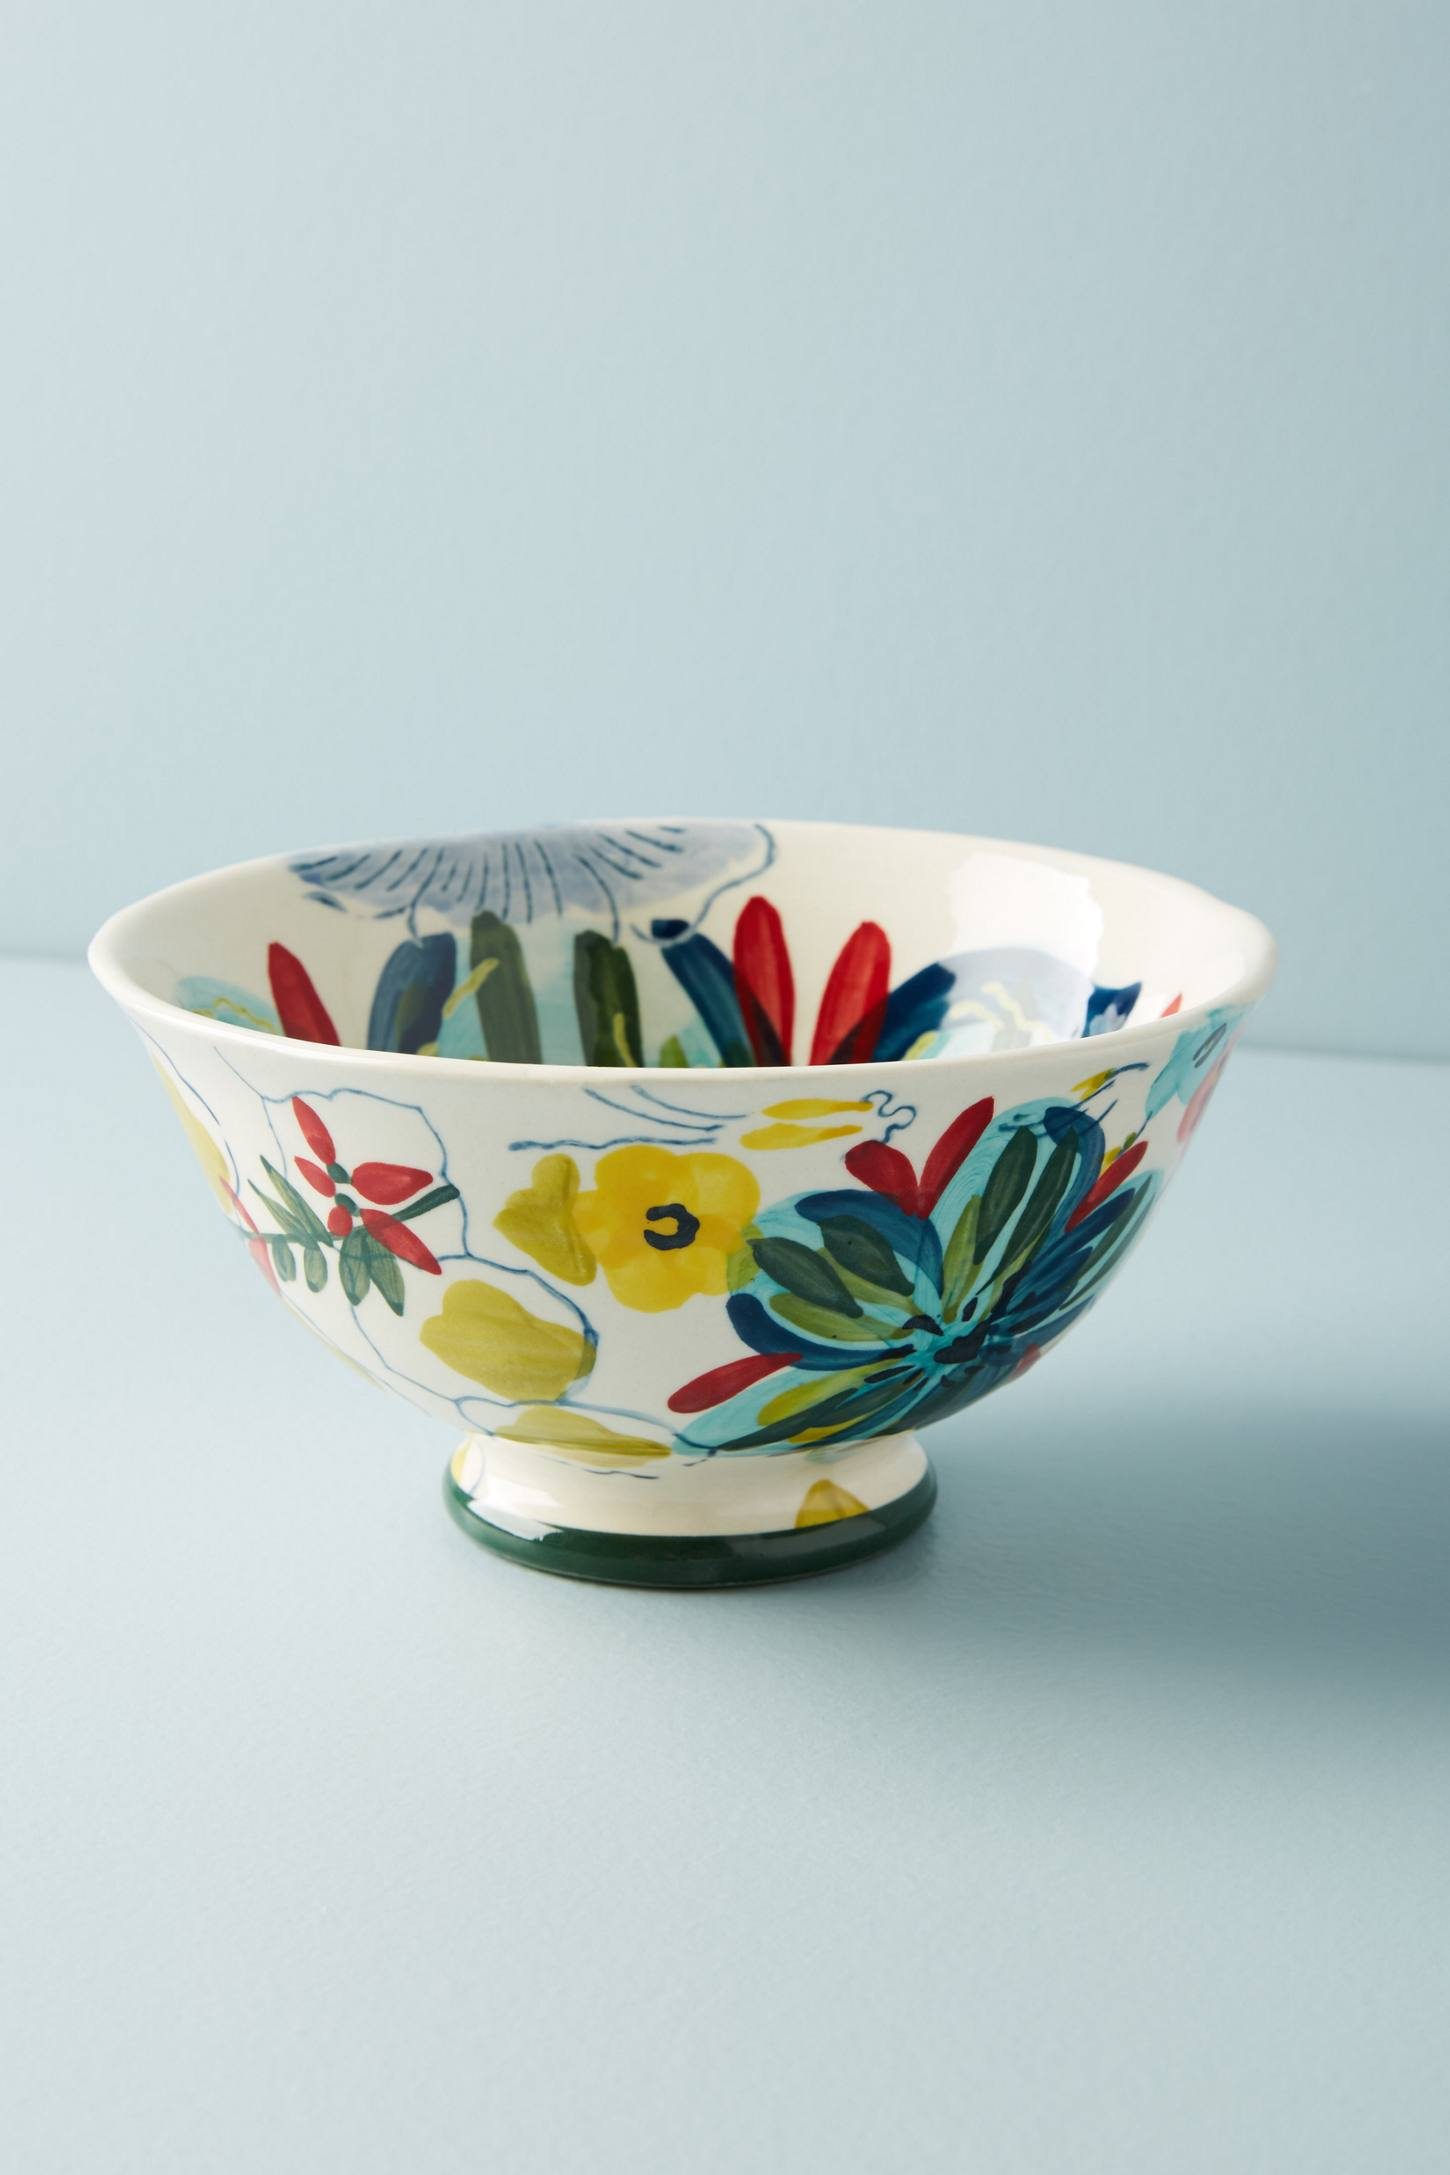 Slide View: 2: Sissinghurst Castle Cereal Bowl